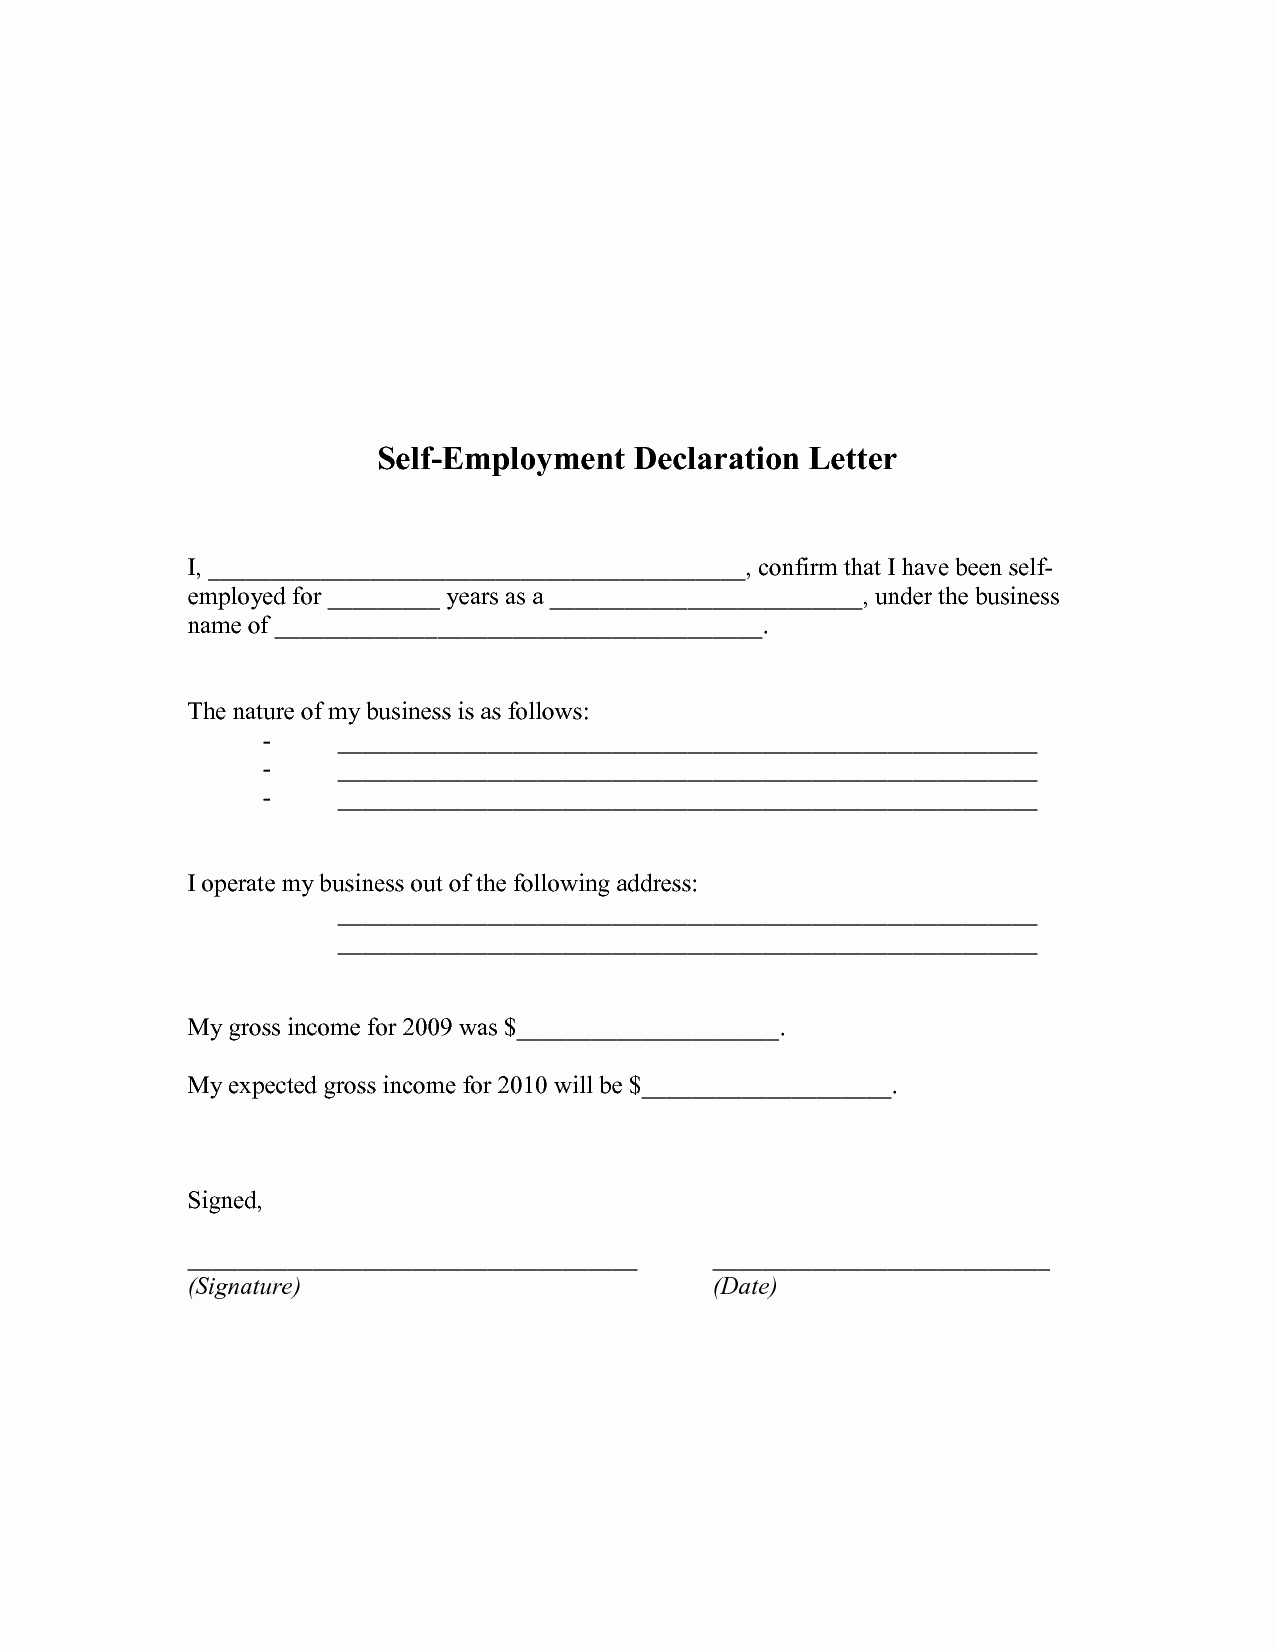 Self Employed Letter Template Fresh Self Employment Proof Of In E Letter Working at Home